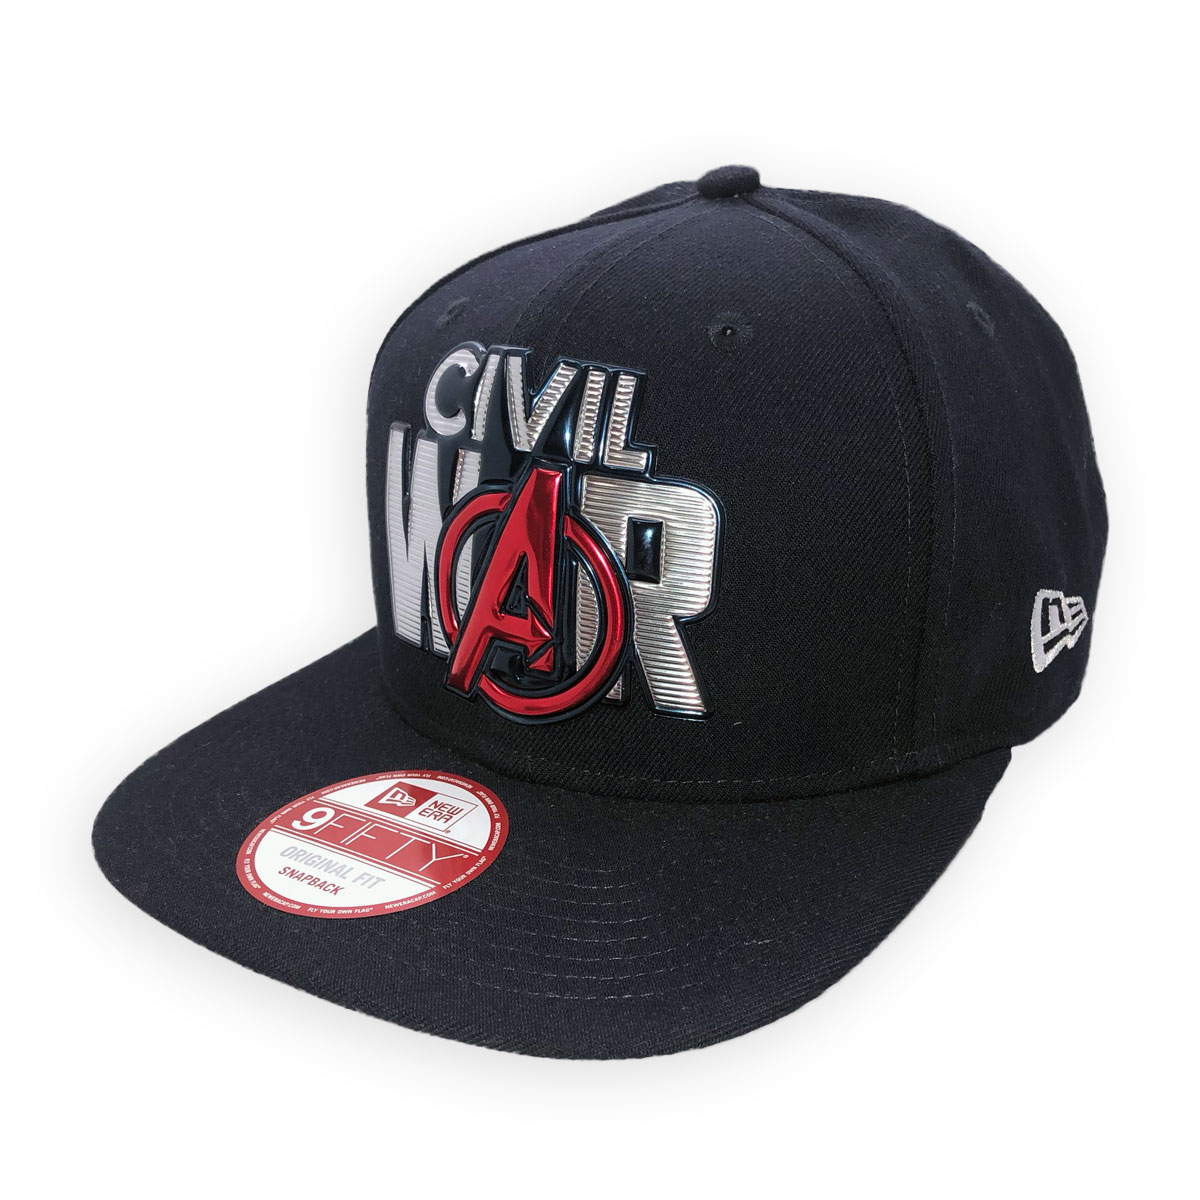 NEW ERA CAPTAIN AMERICA CIVIL WAR SNAPBACK CAP HAT 9FIFTY ORIGINAL ... 60ef5914d85c